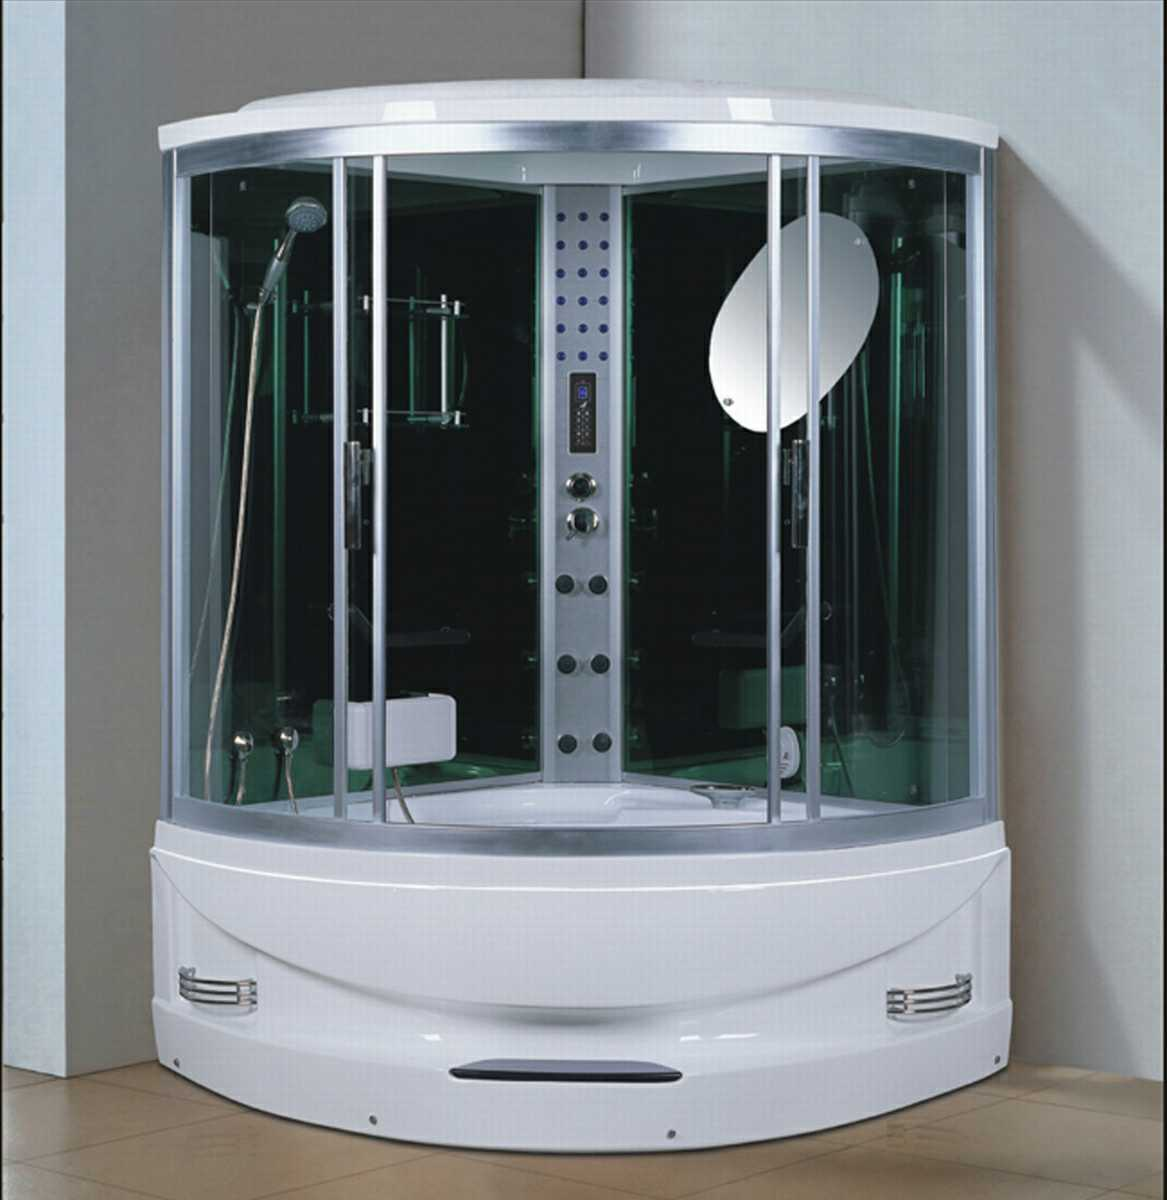 1450mm Sector Steam Sauna with Jacuzzi and Shower for 2 Persons (AT-GT2145F)